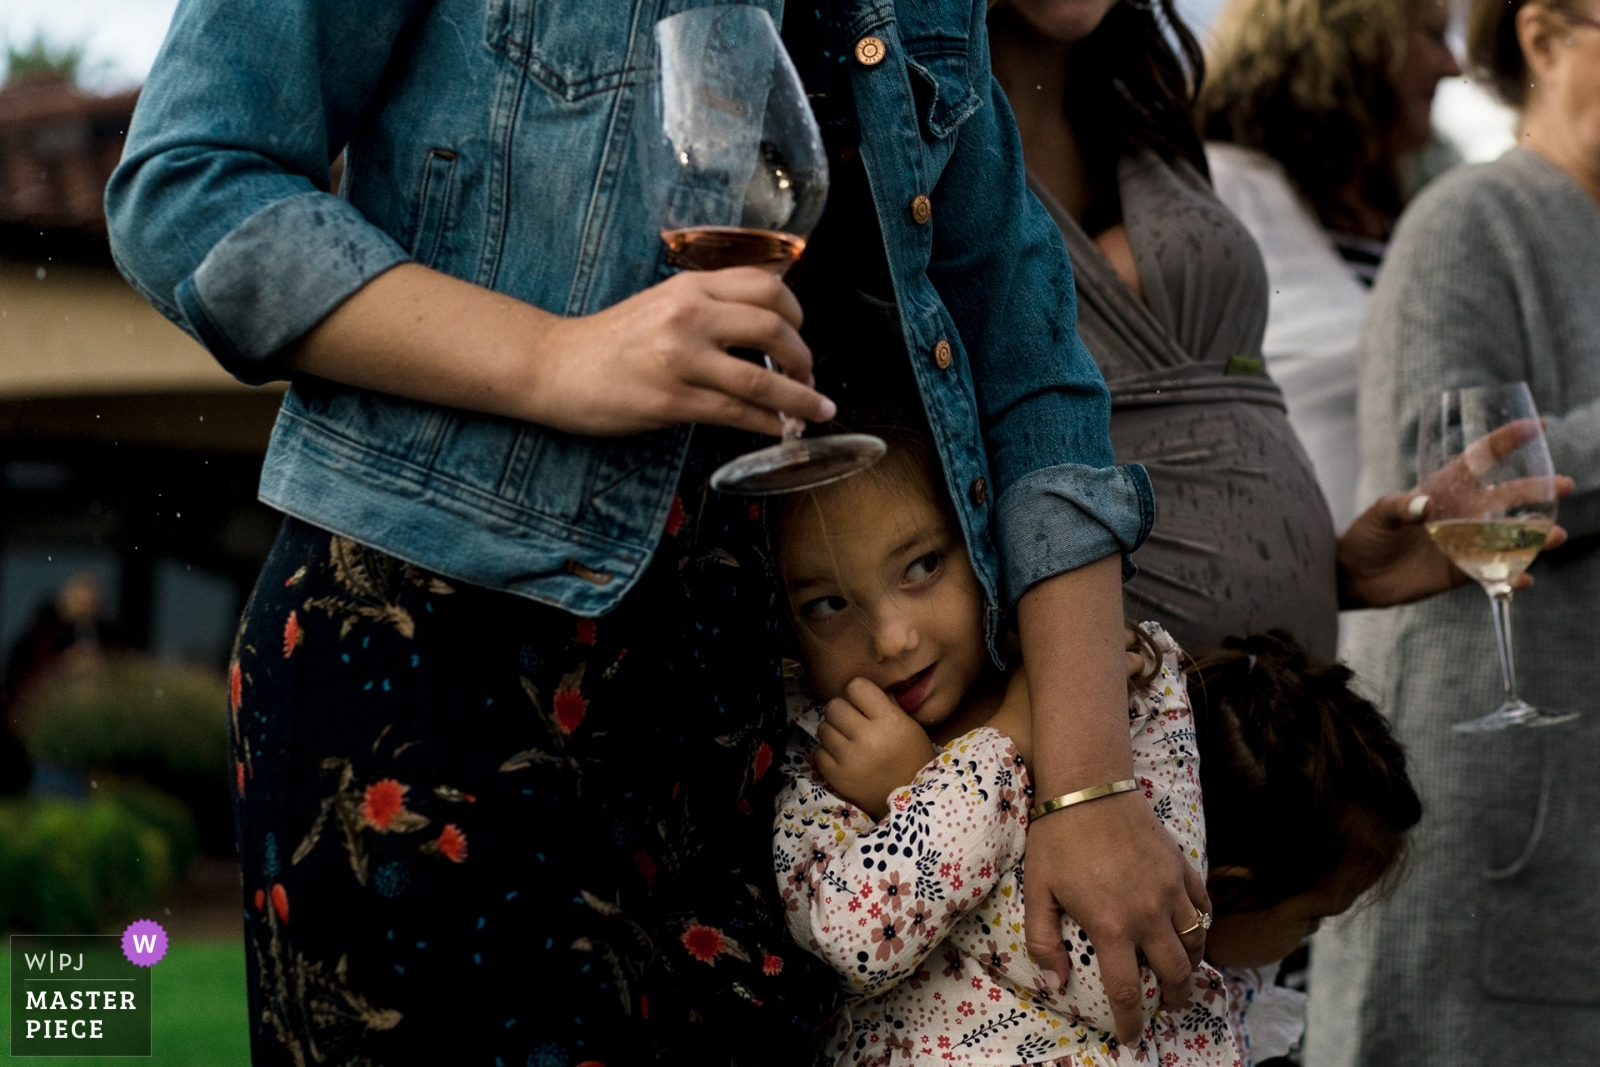 child hides from rain in moms coat during outdoor wedding ceremony - Seattle, Washington Wedding Photography -  | benson Winery